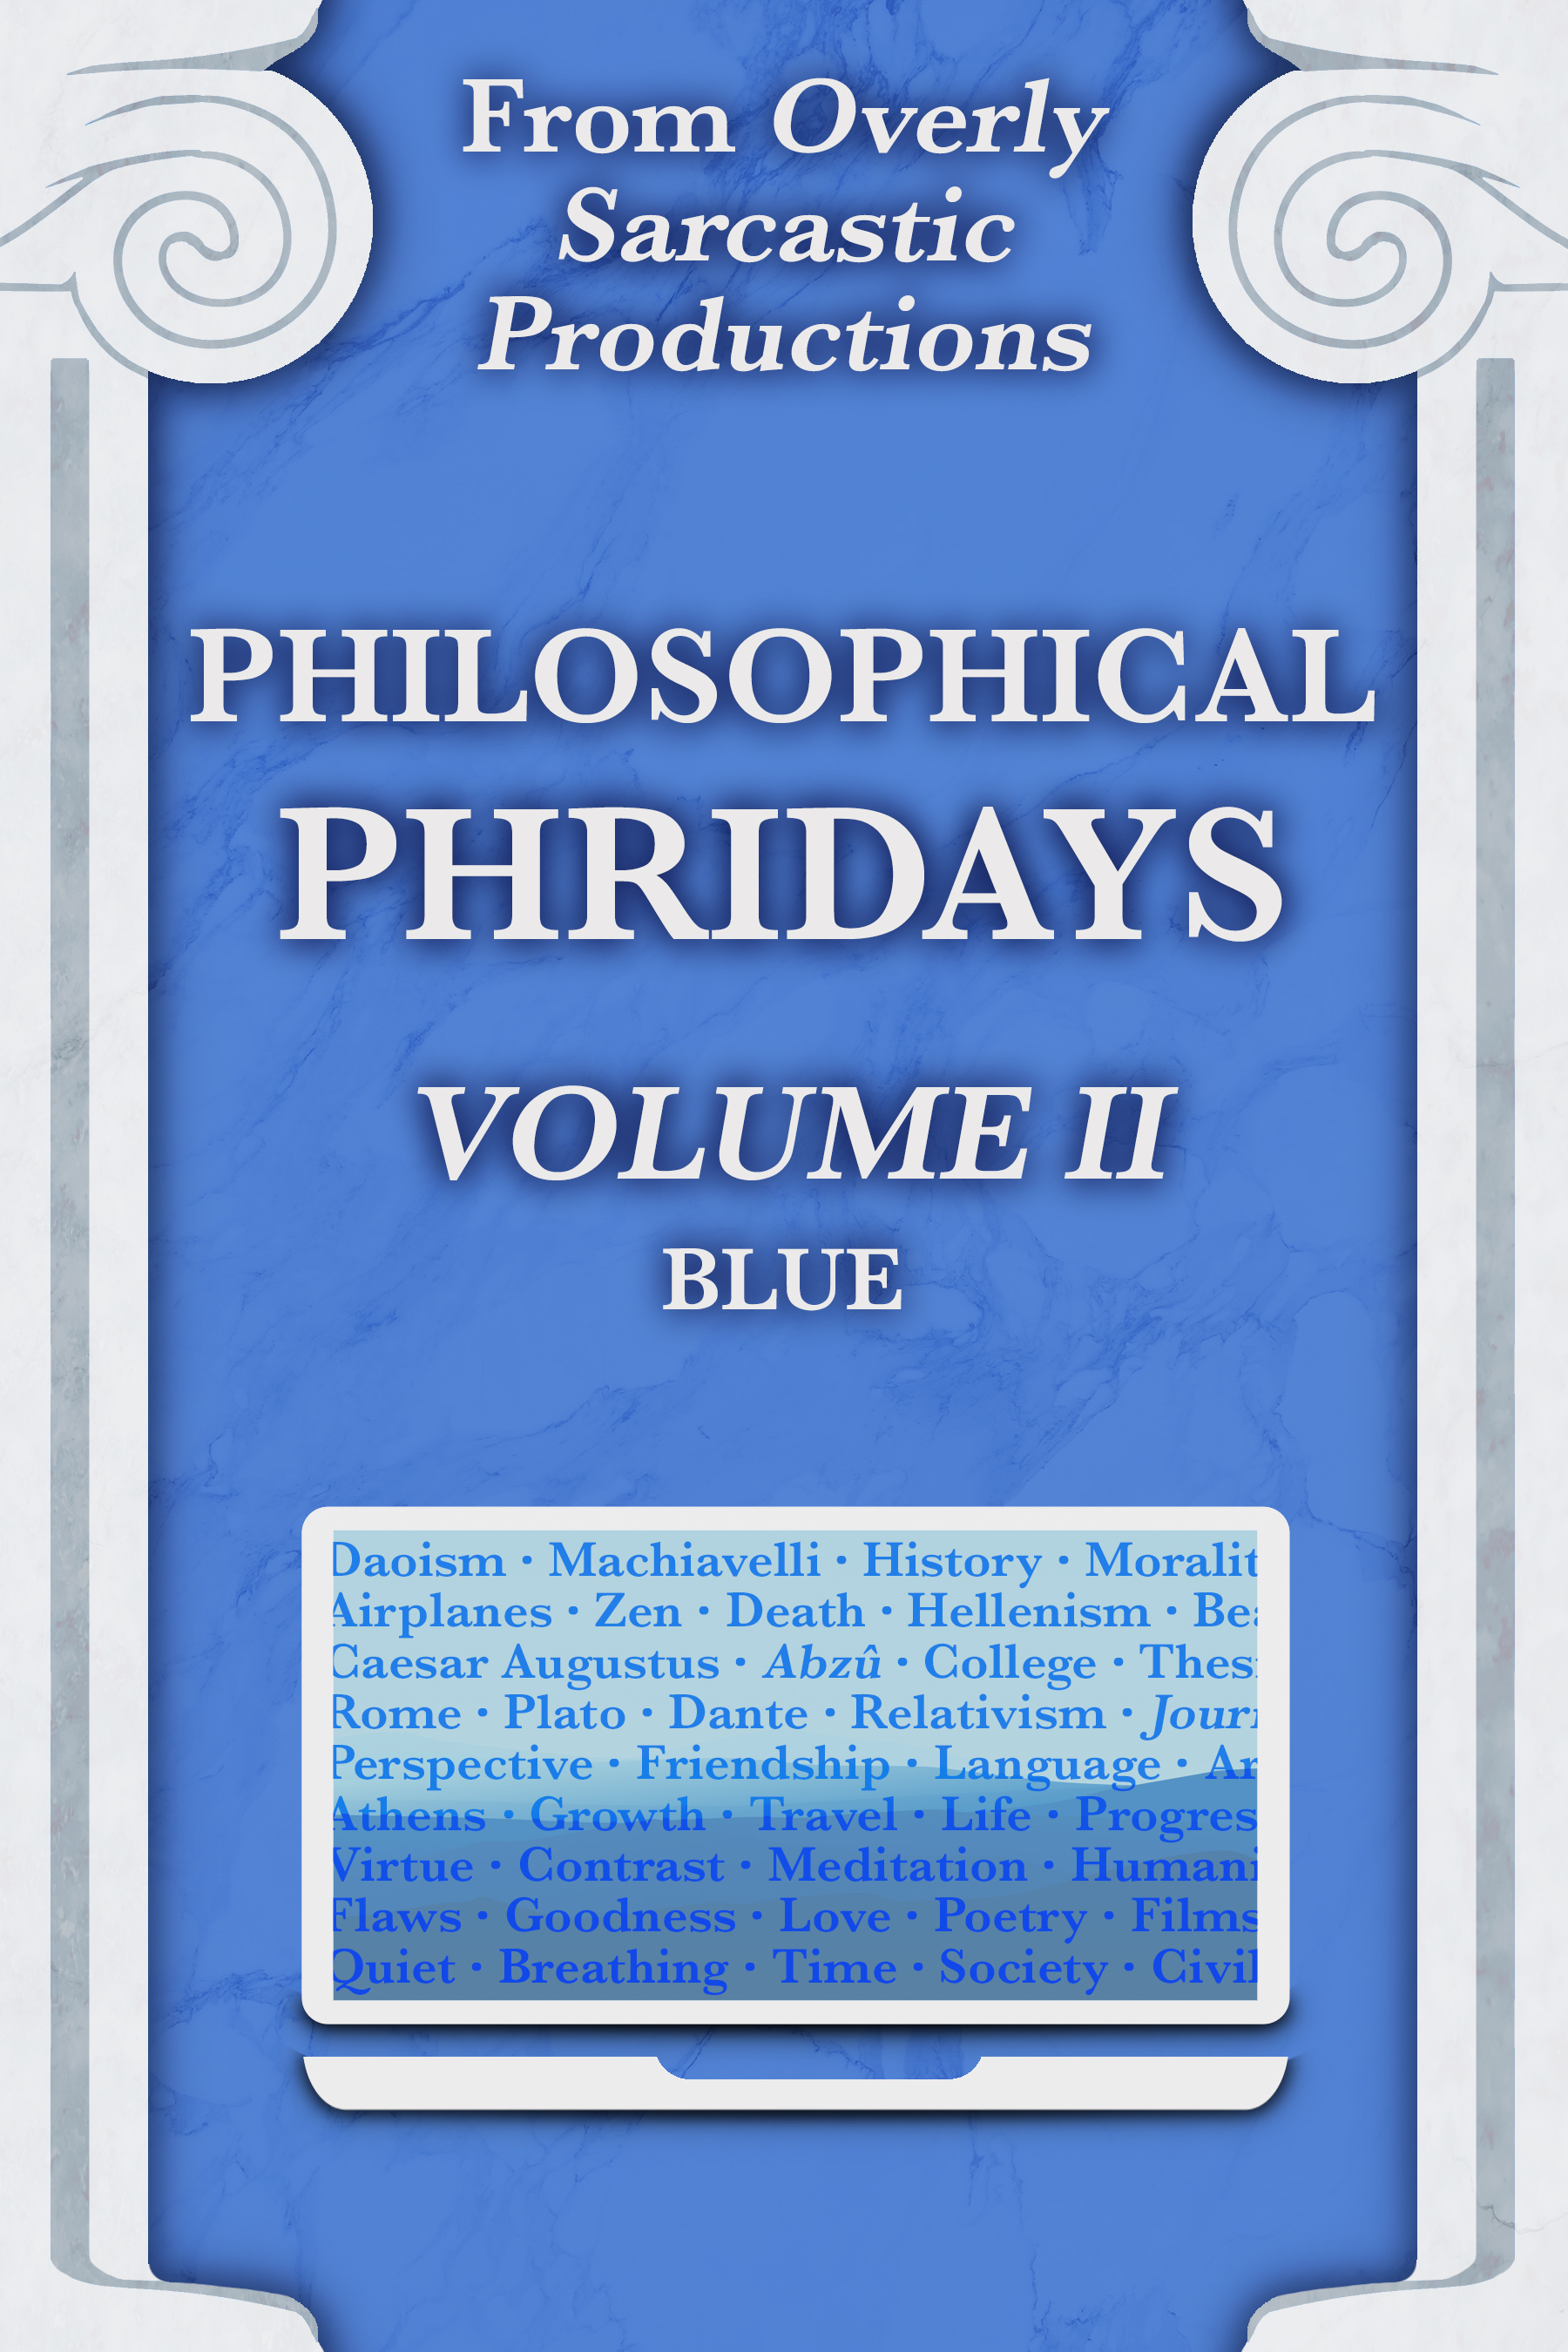 Blue Cover Front.jpg